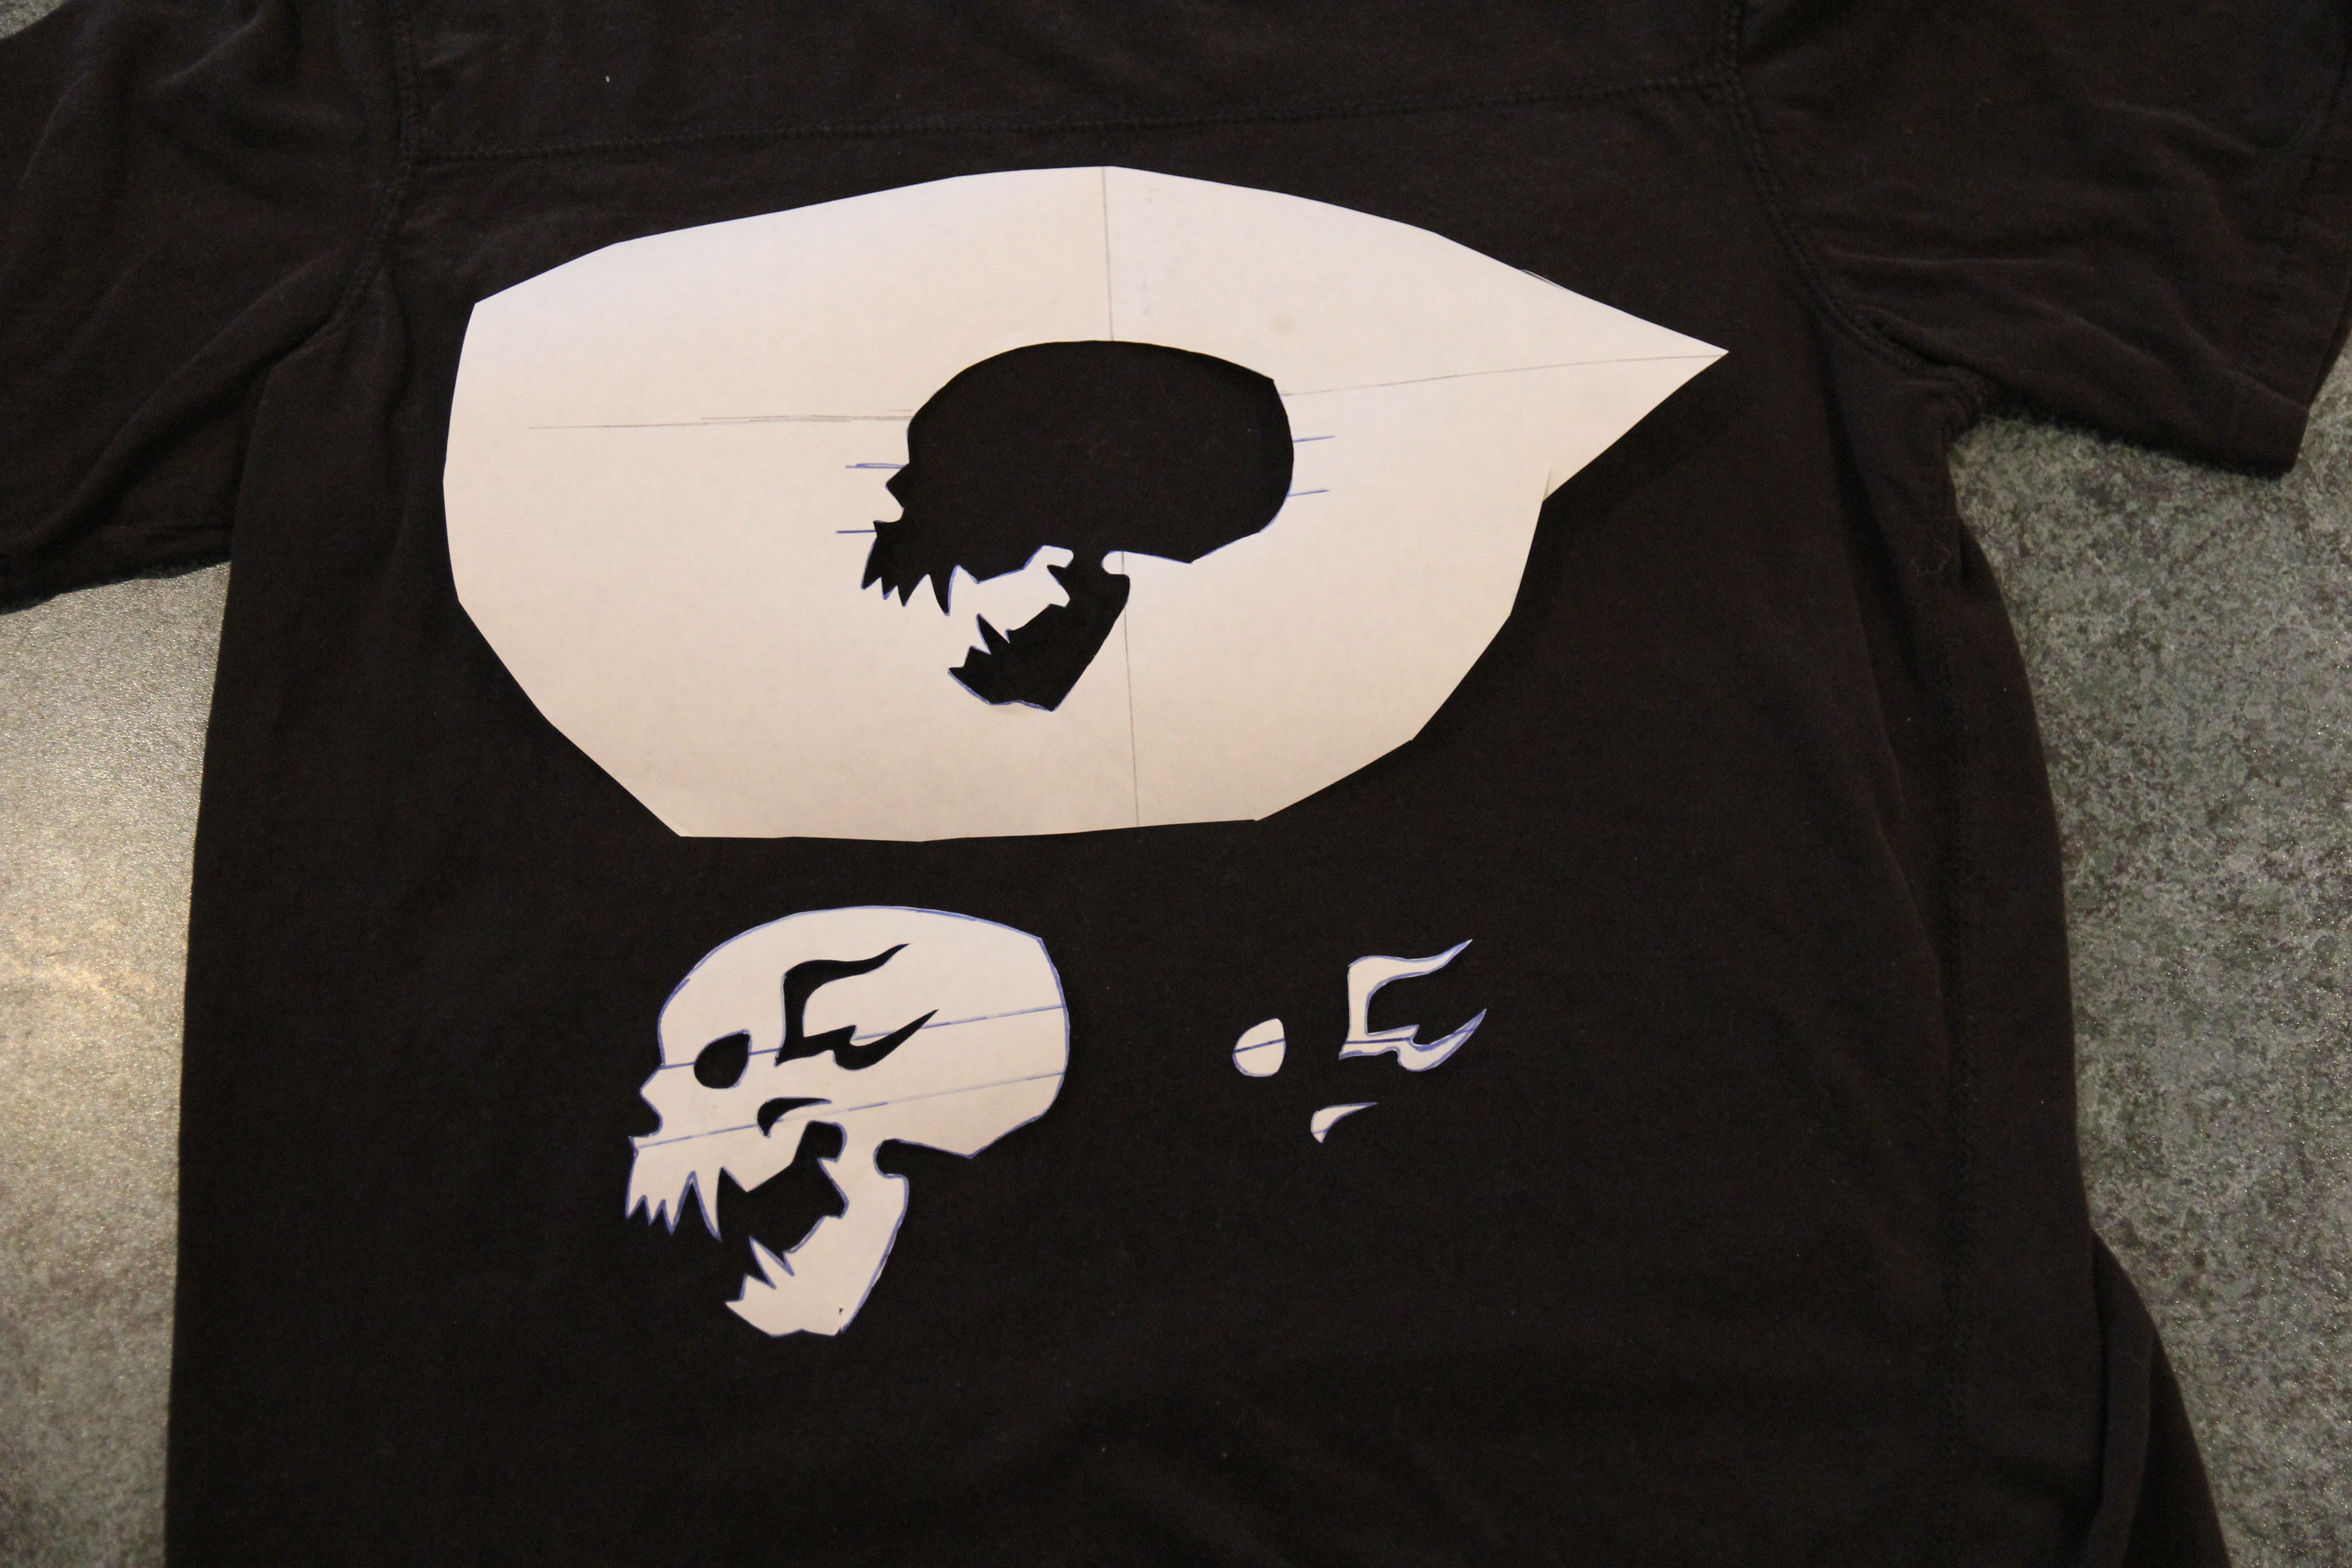 Picture of Bleached Skull Stencil - Cutting Out the Design